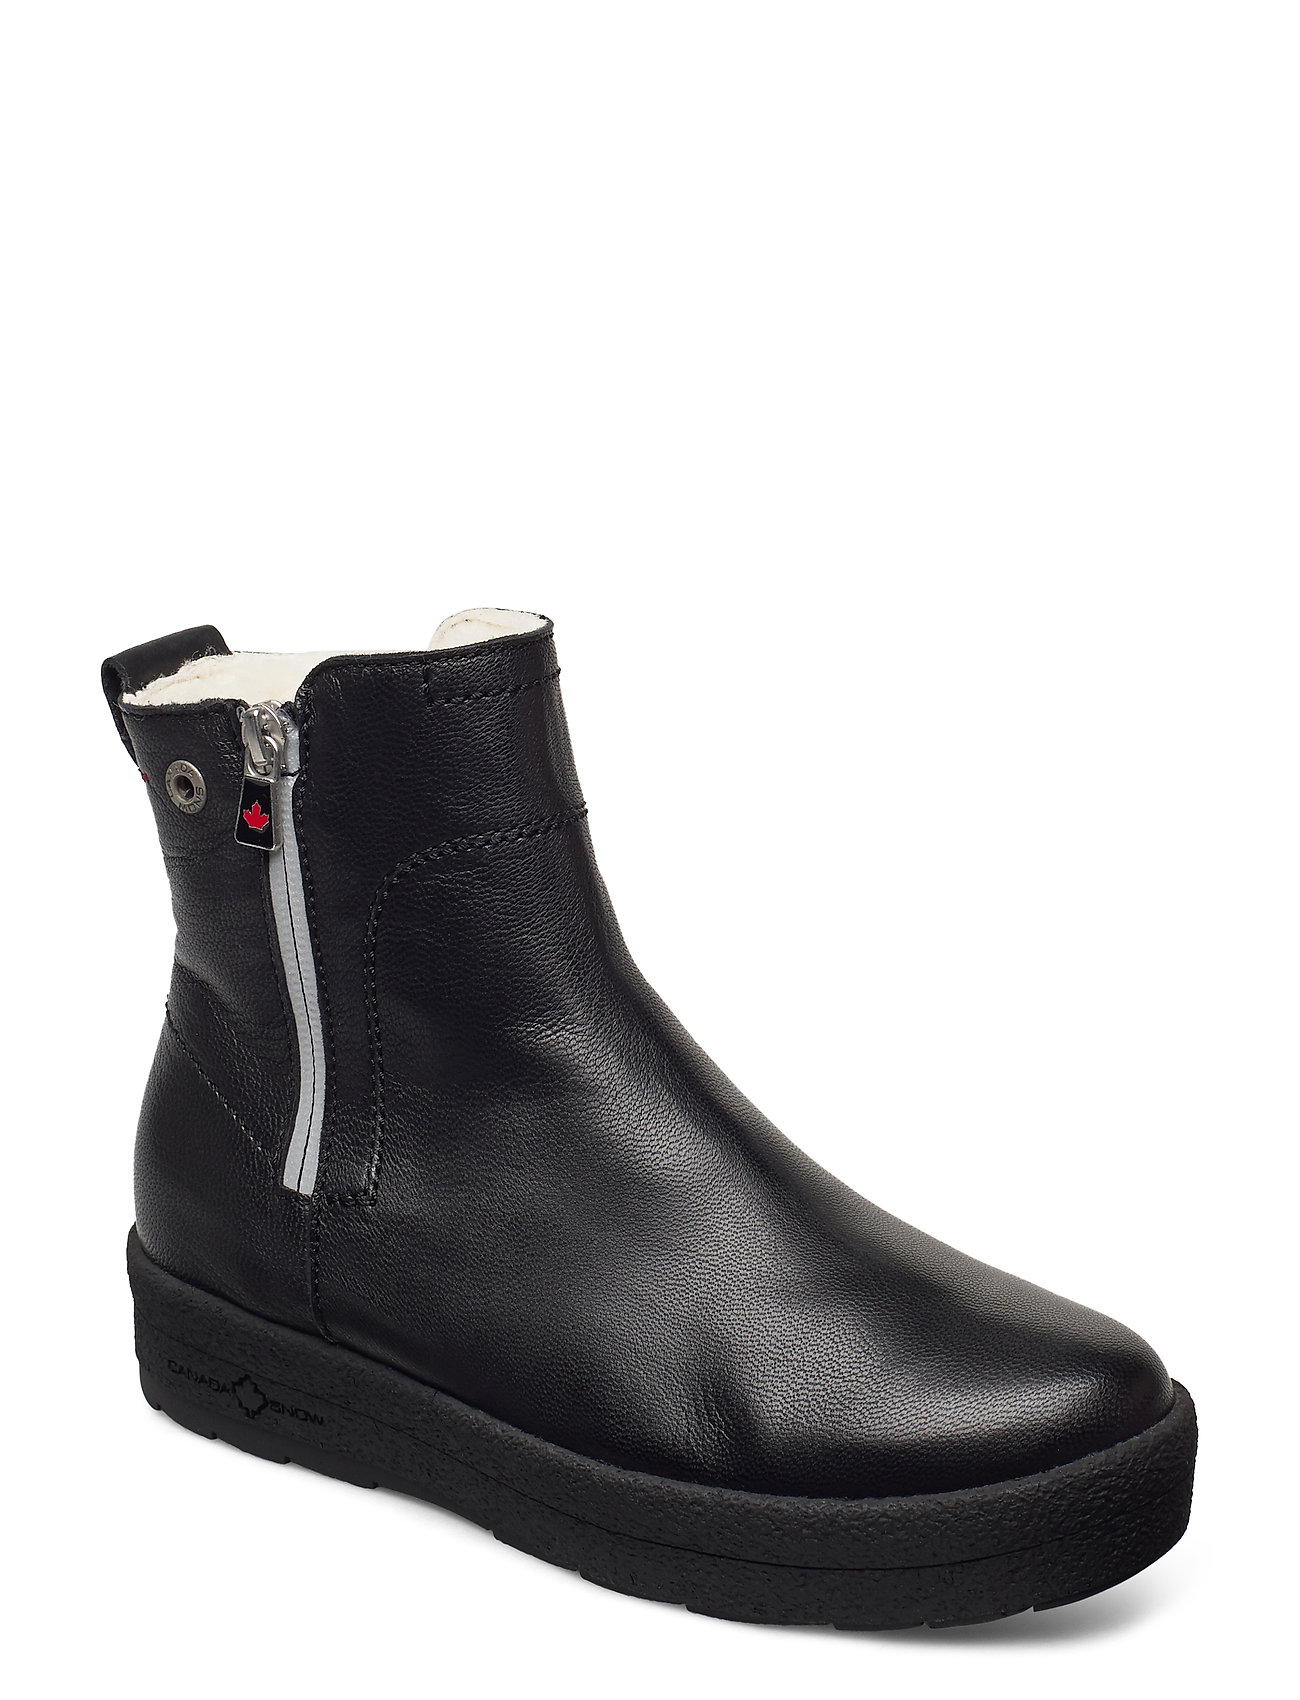 Image of Mount Baker Shoes Boots Ankle Boots Ankle Boot - Flat Sort Canada Snow (3445899585)